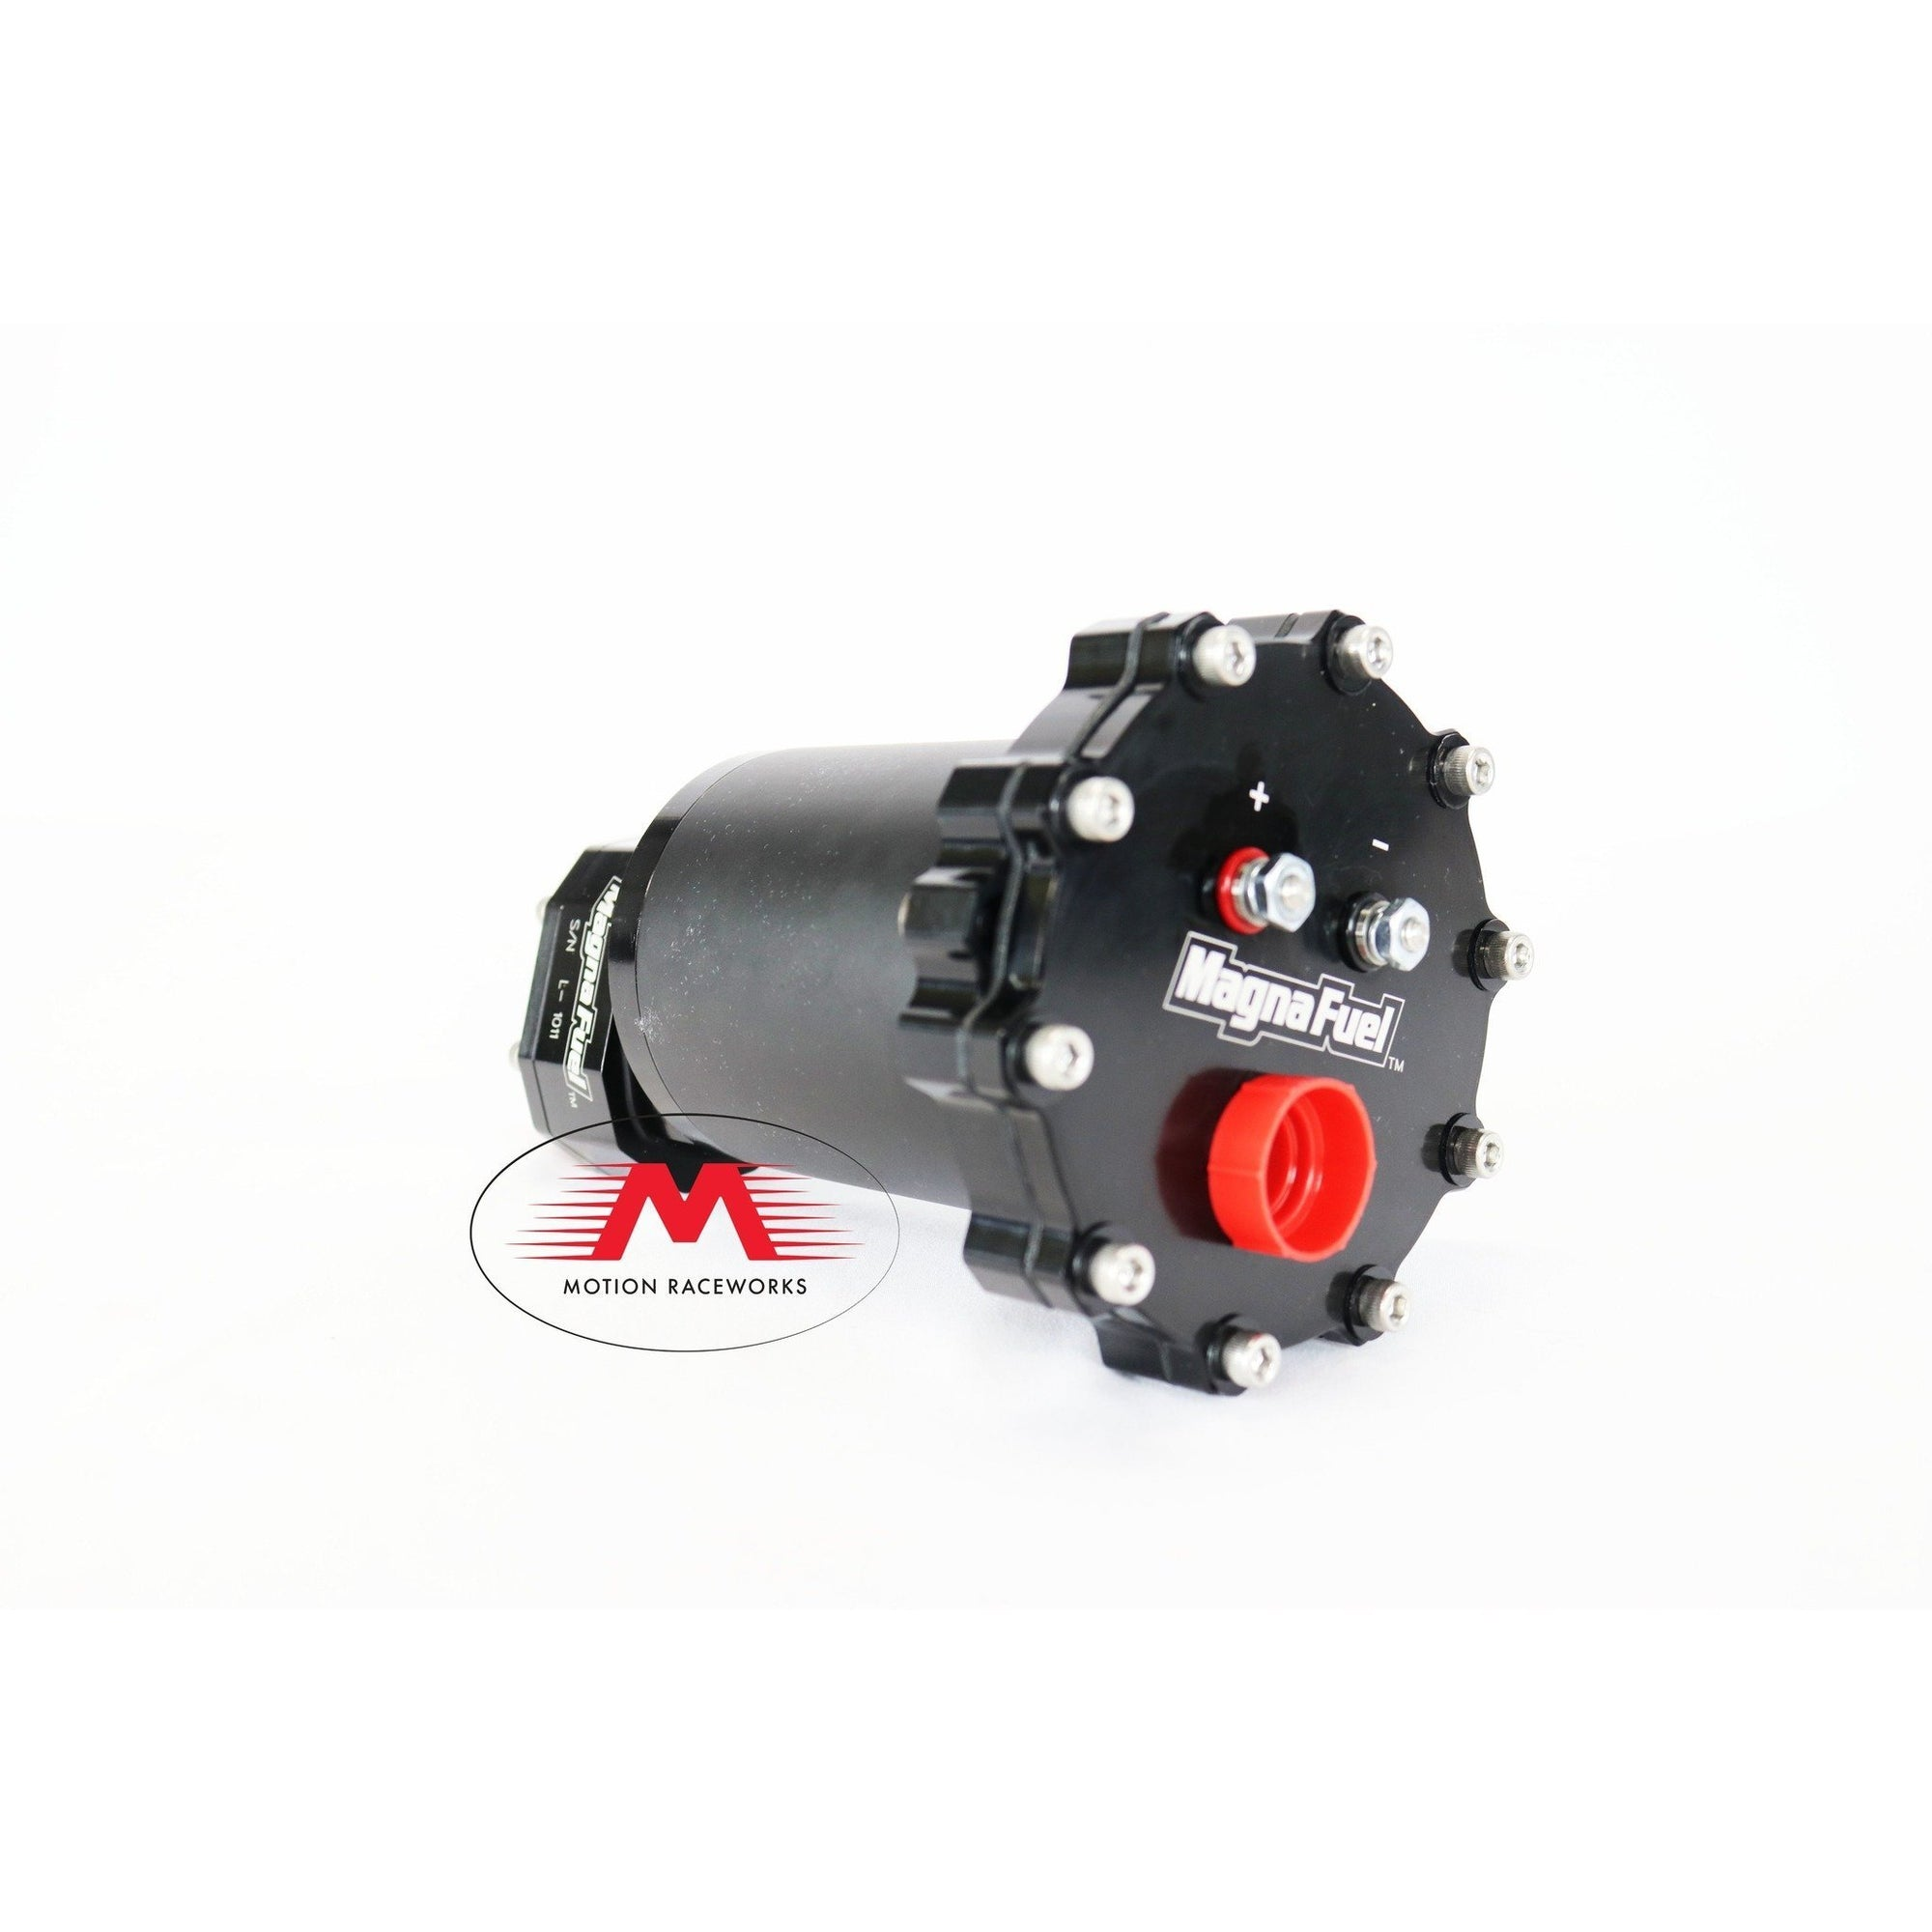 "Magnafuel In Tank Protuner 750 4303 All Black 10"" Depth-Magnafuel-Motion Raceworks"